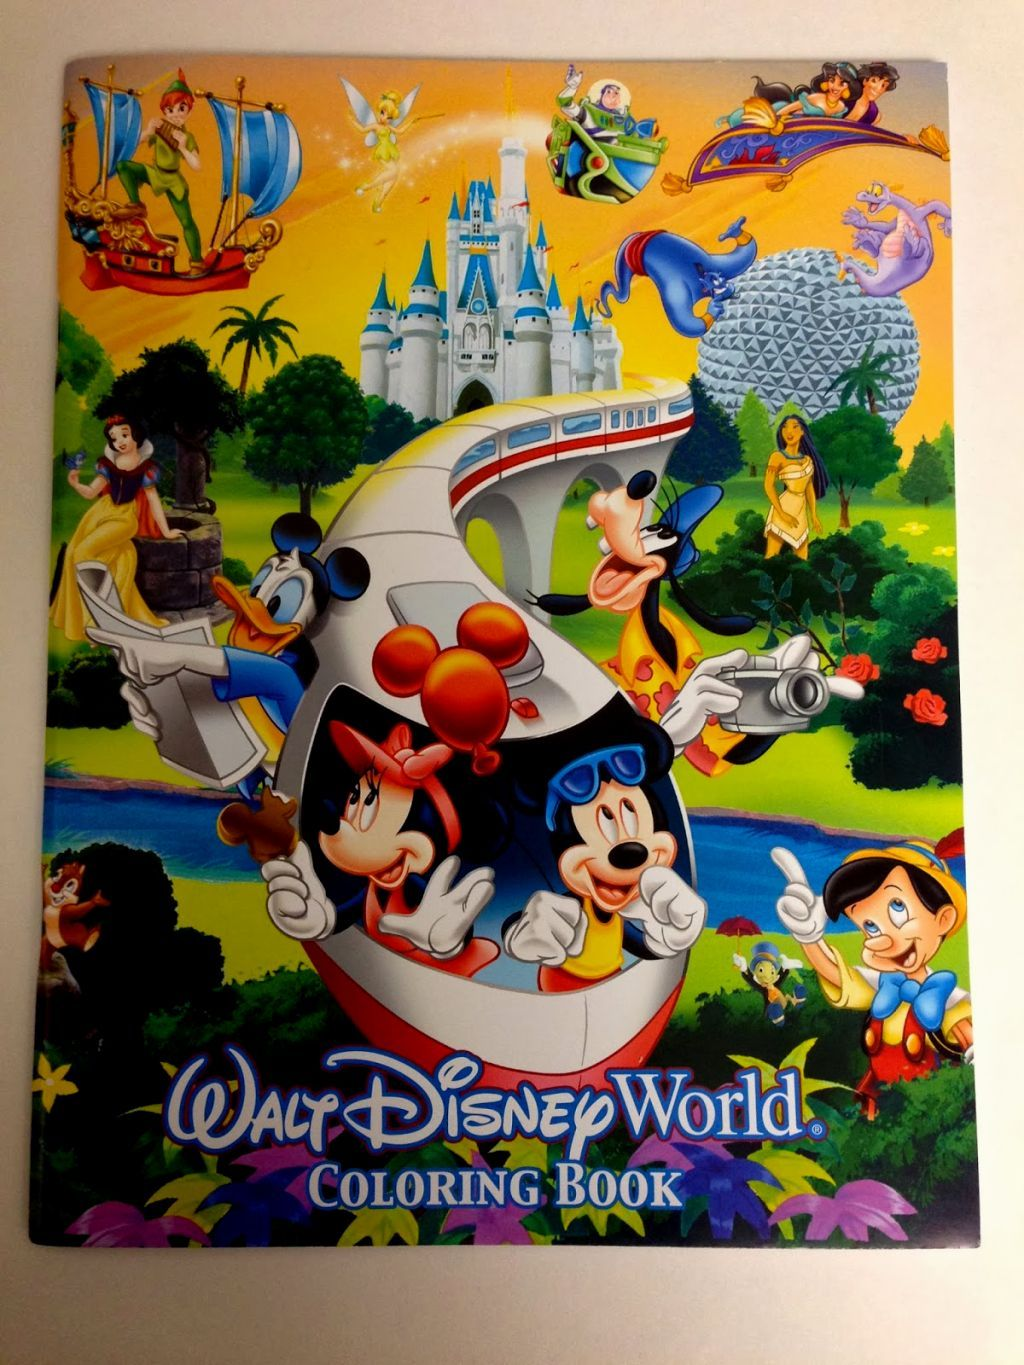 Disney World Coloring Book | Coloring Pages | Pinterest | Coloring books